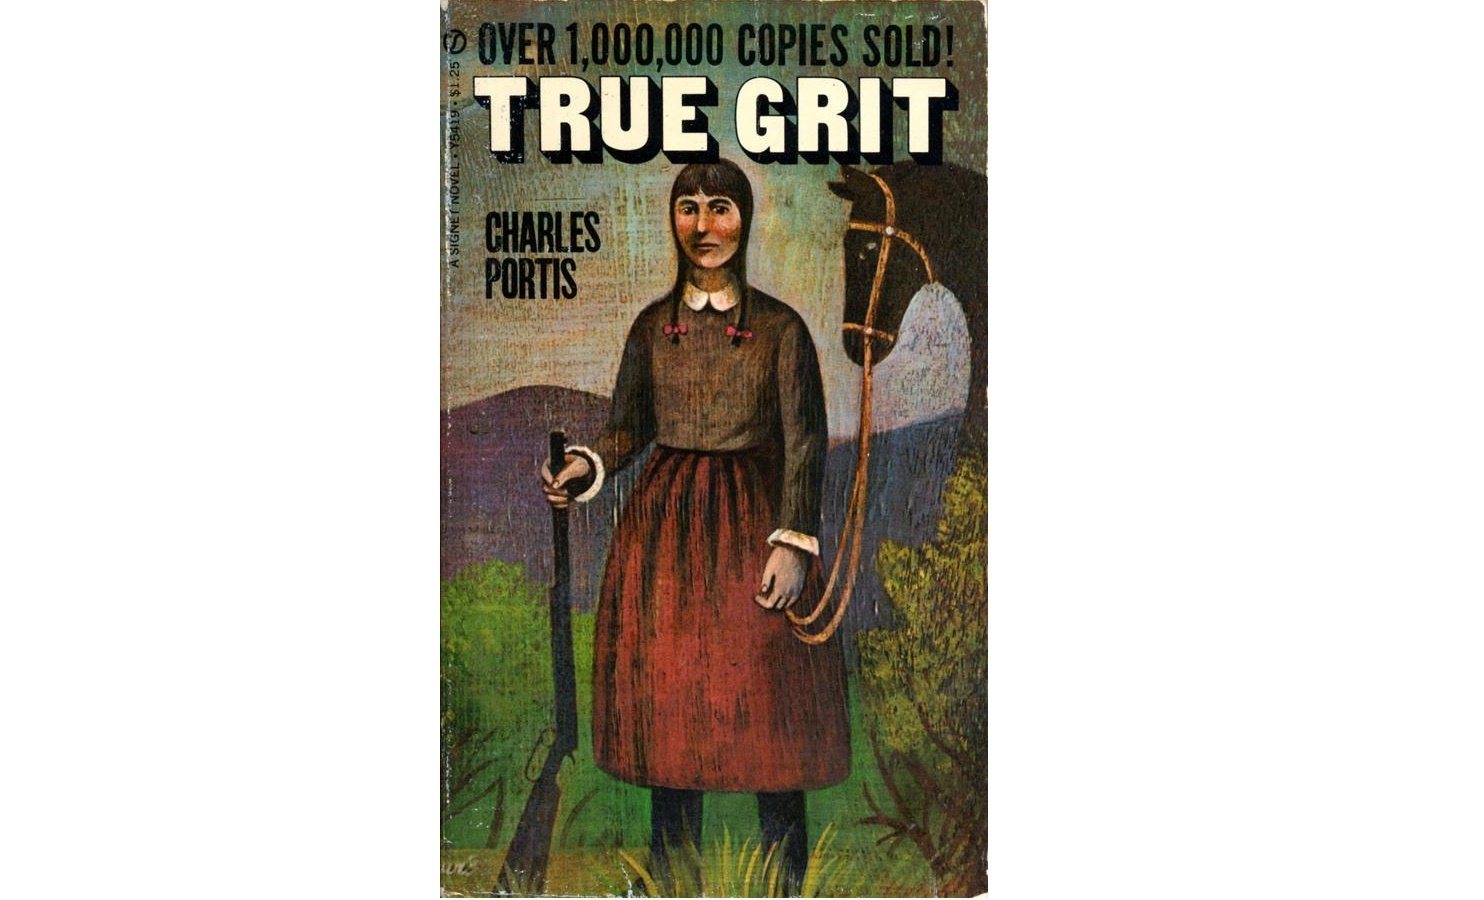 """charles portis Charles portis, the reclusive author of the 1968 novel """"true grit,"""" is a cult writer's cult writer, cherished by a small but devoted following."""